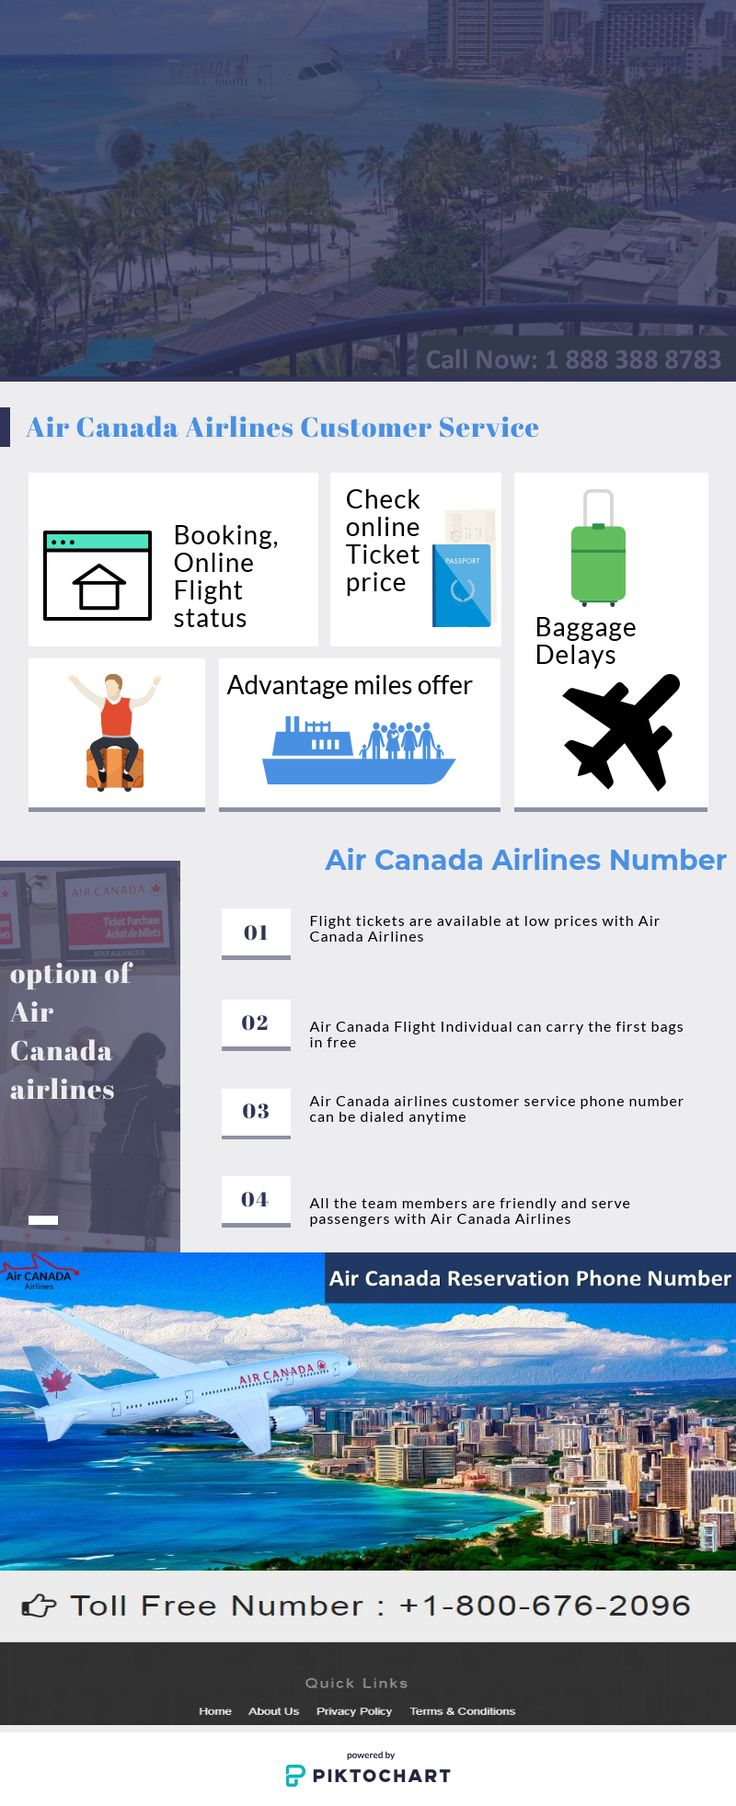 Contact us at Air Canada airlines flight status Phone